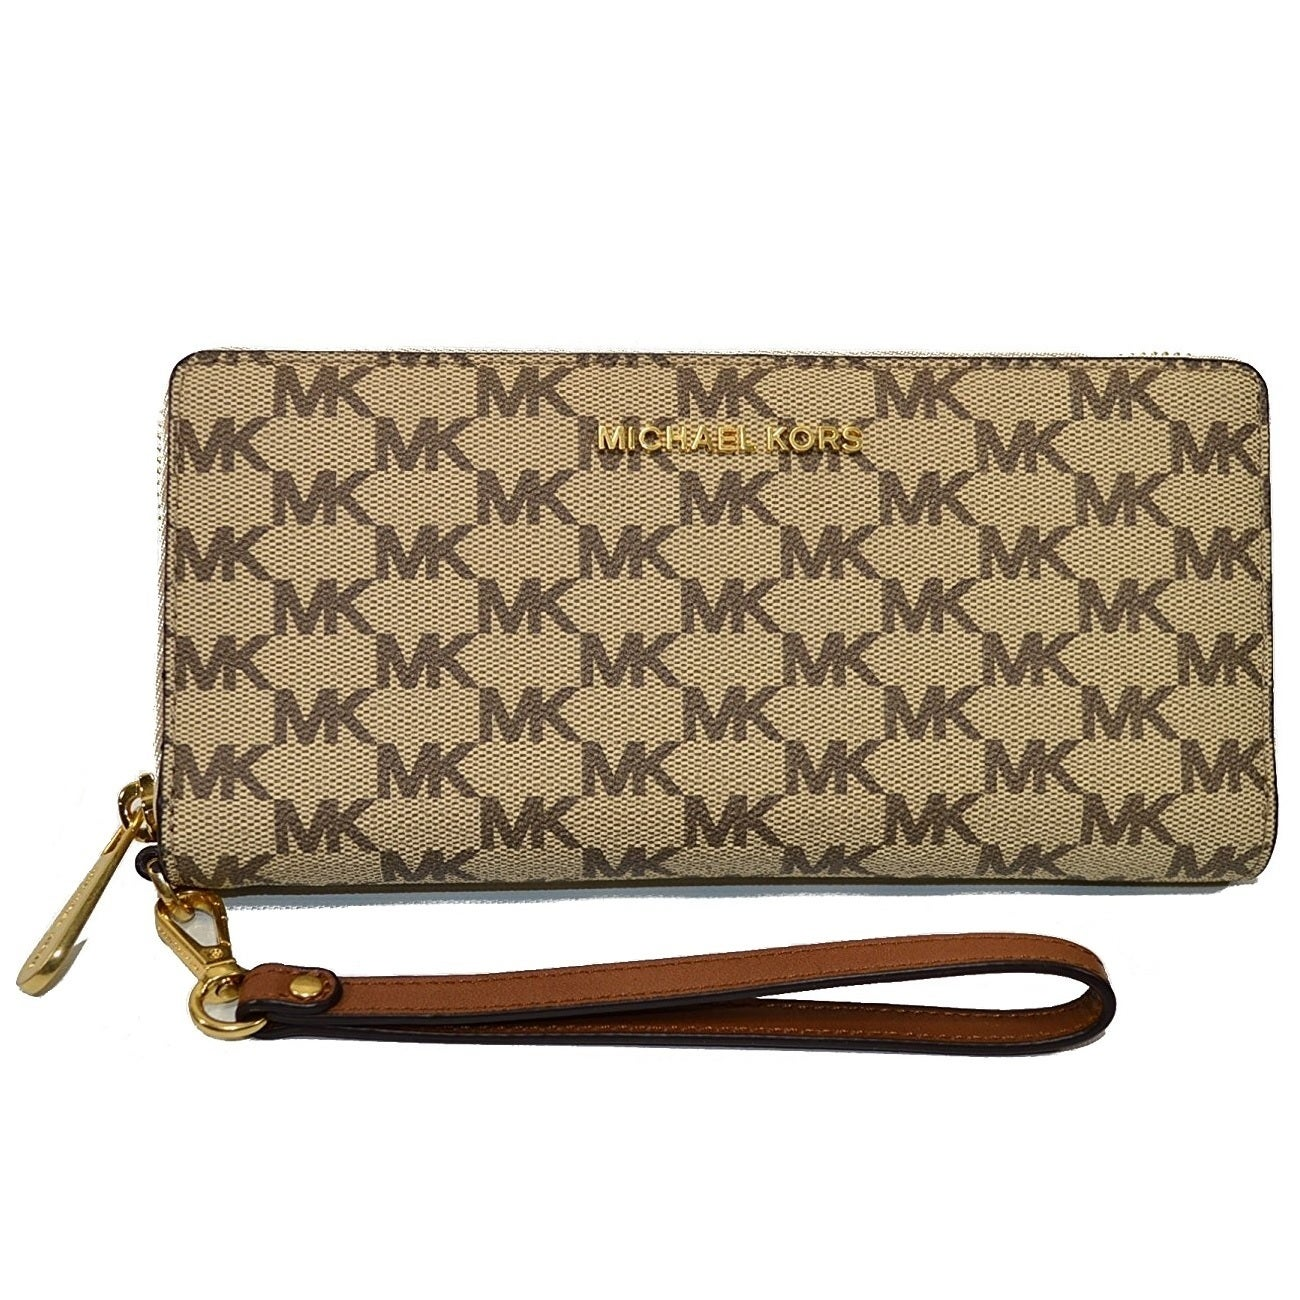 ce7a981385d089 Shop Michael Kors Jet Set Travel Logo Continental Natural/Luggage Wristlet  - Free Shipping Today - Overstock - 17031657